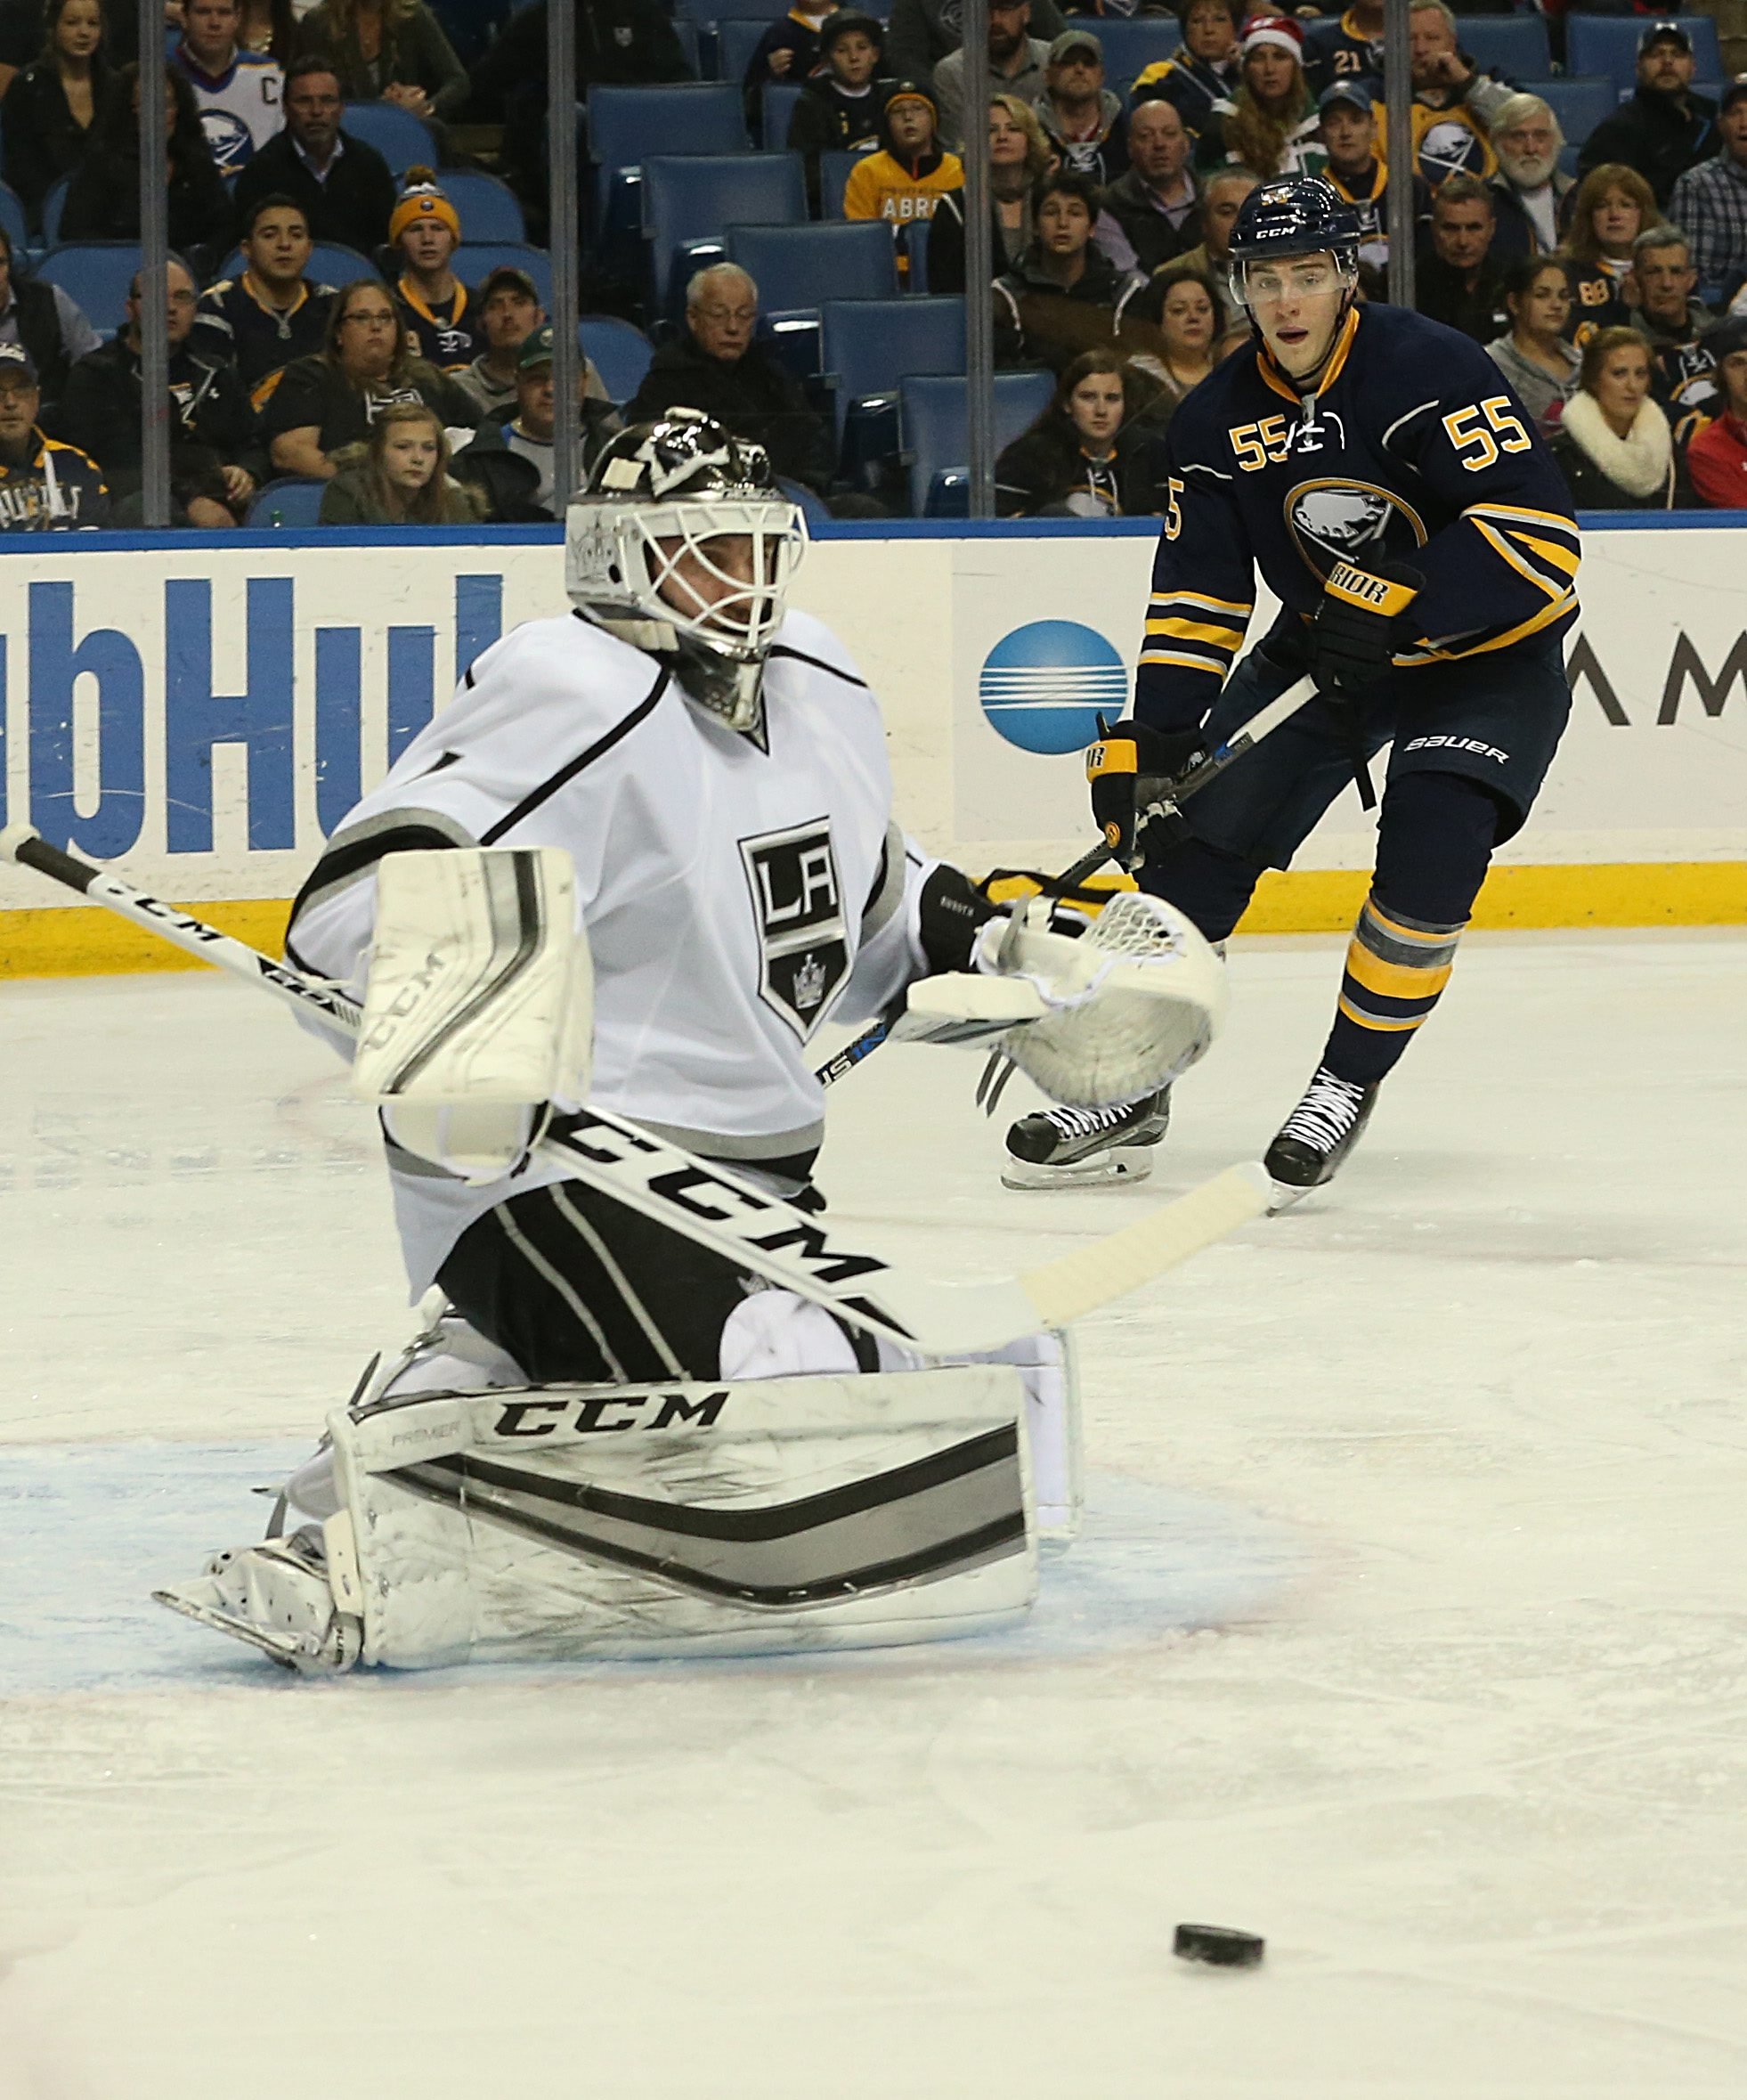 Former Sabres goalie Jhonas Enroth is now the backup to Jonathan Quick in Los Angeles. He backed up Ryan Miller while in Buffalo.